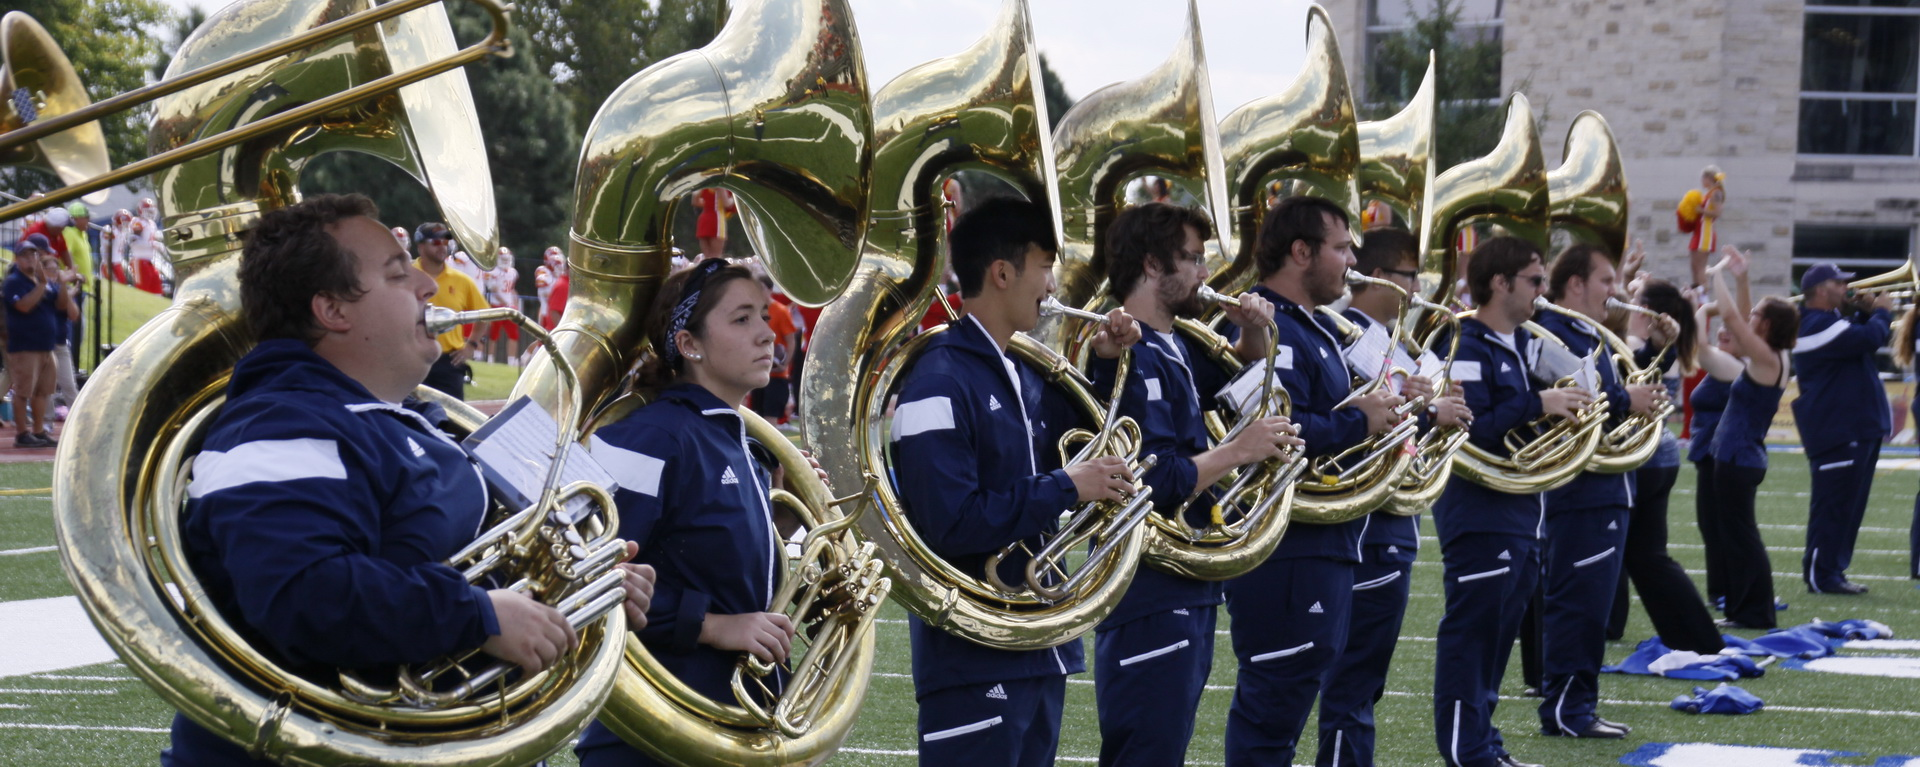 Marching Blues tuba players on football field